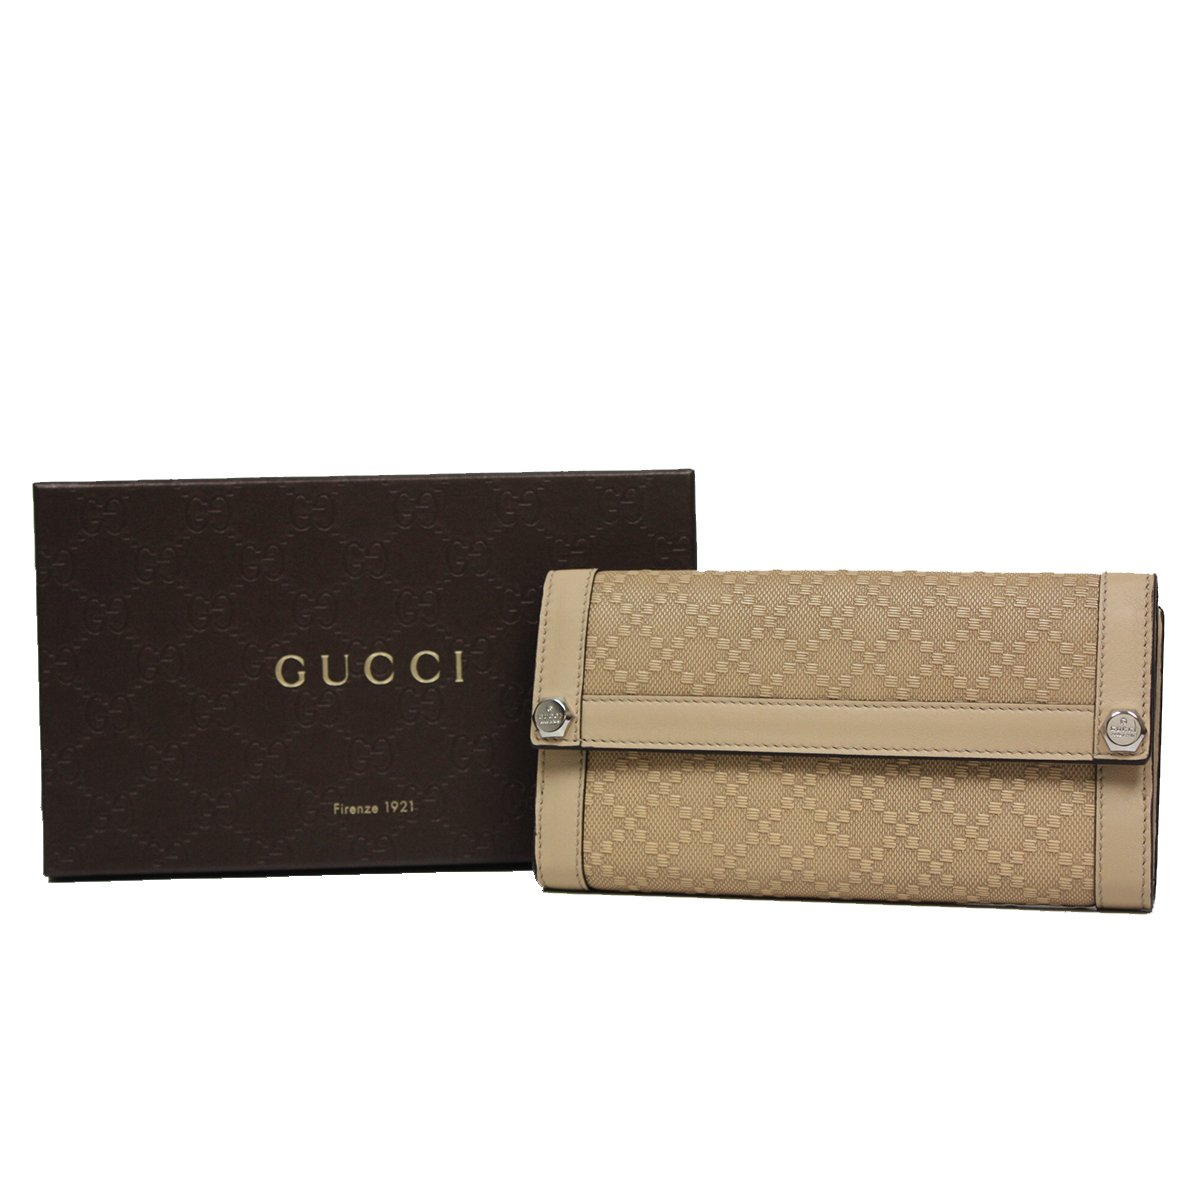 Gucci Diamante Leather Continental Flap Wallet 231839, Beige Tan